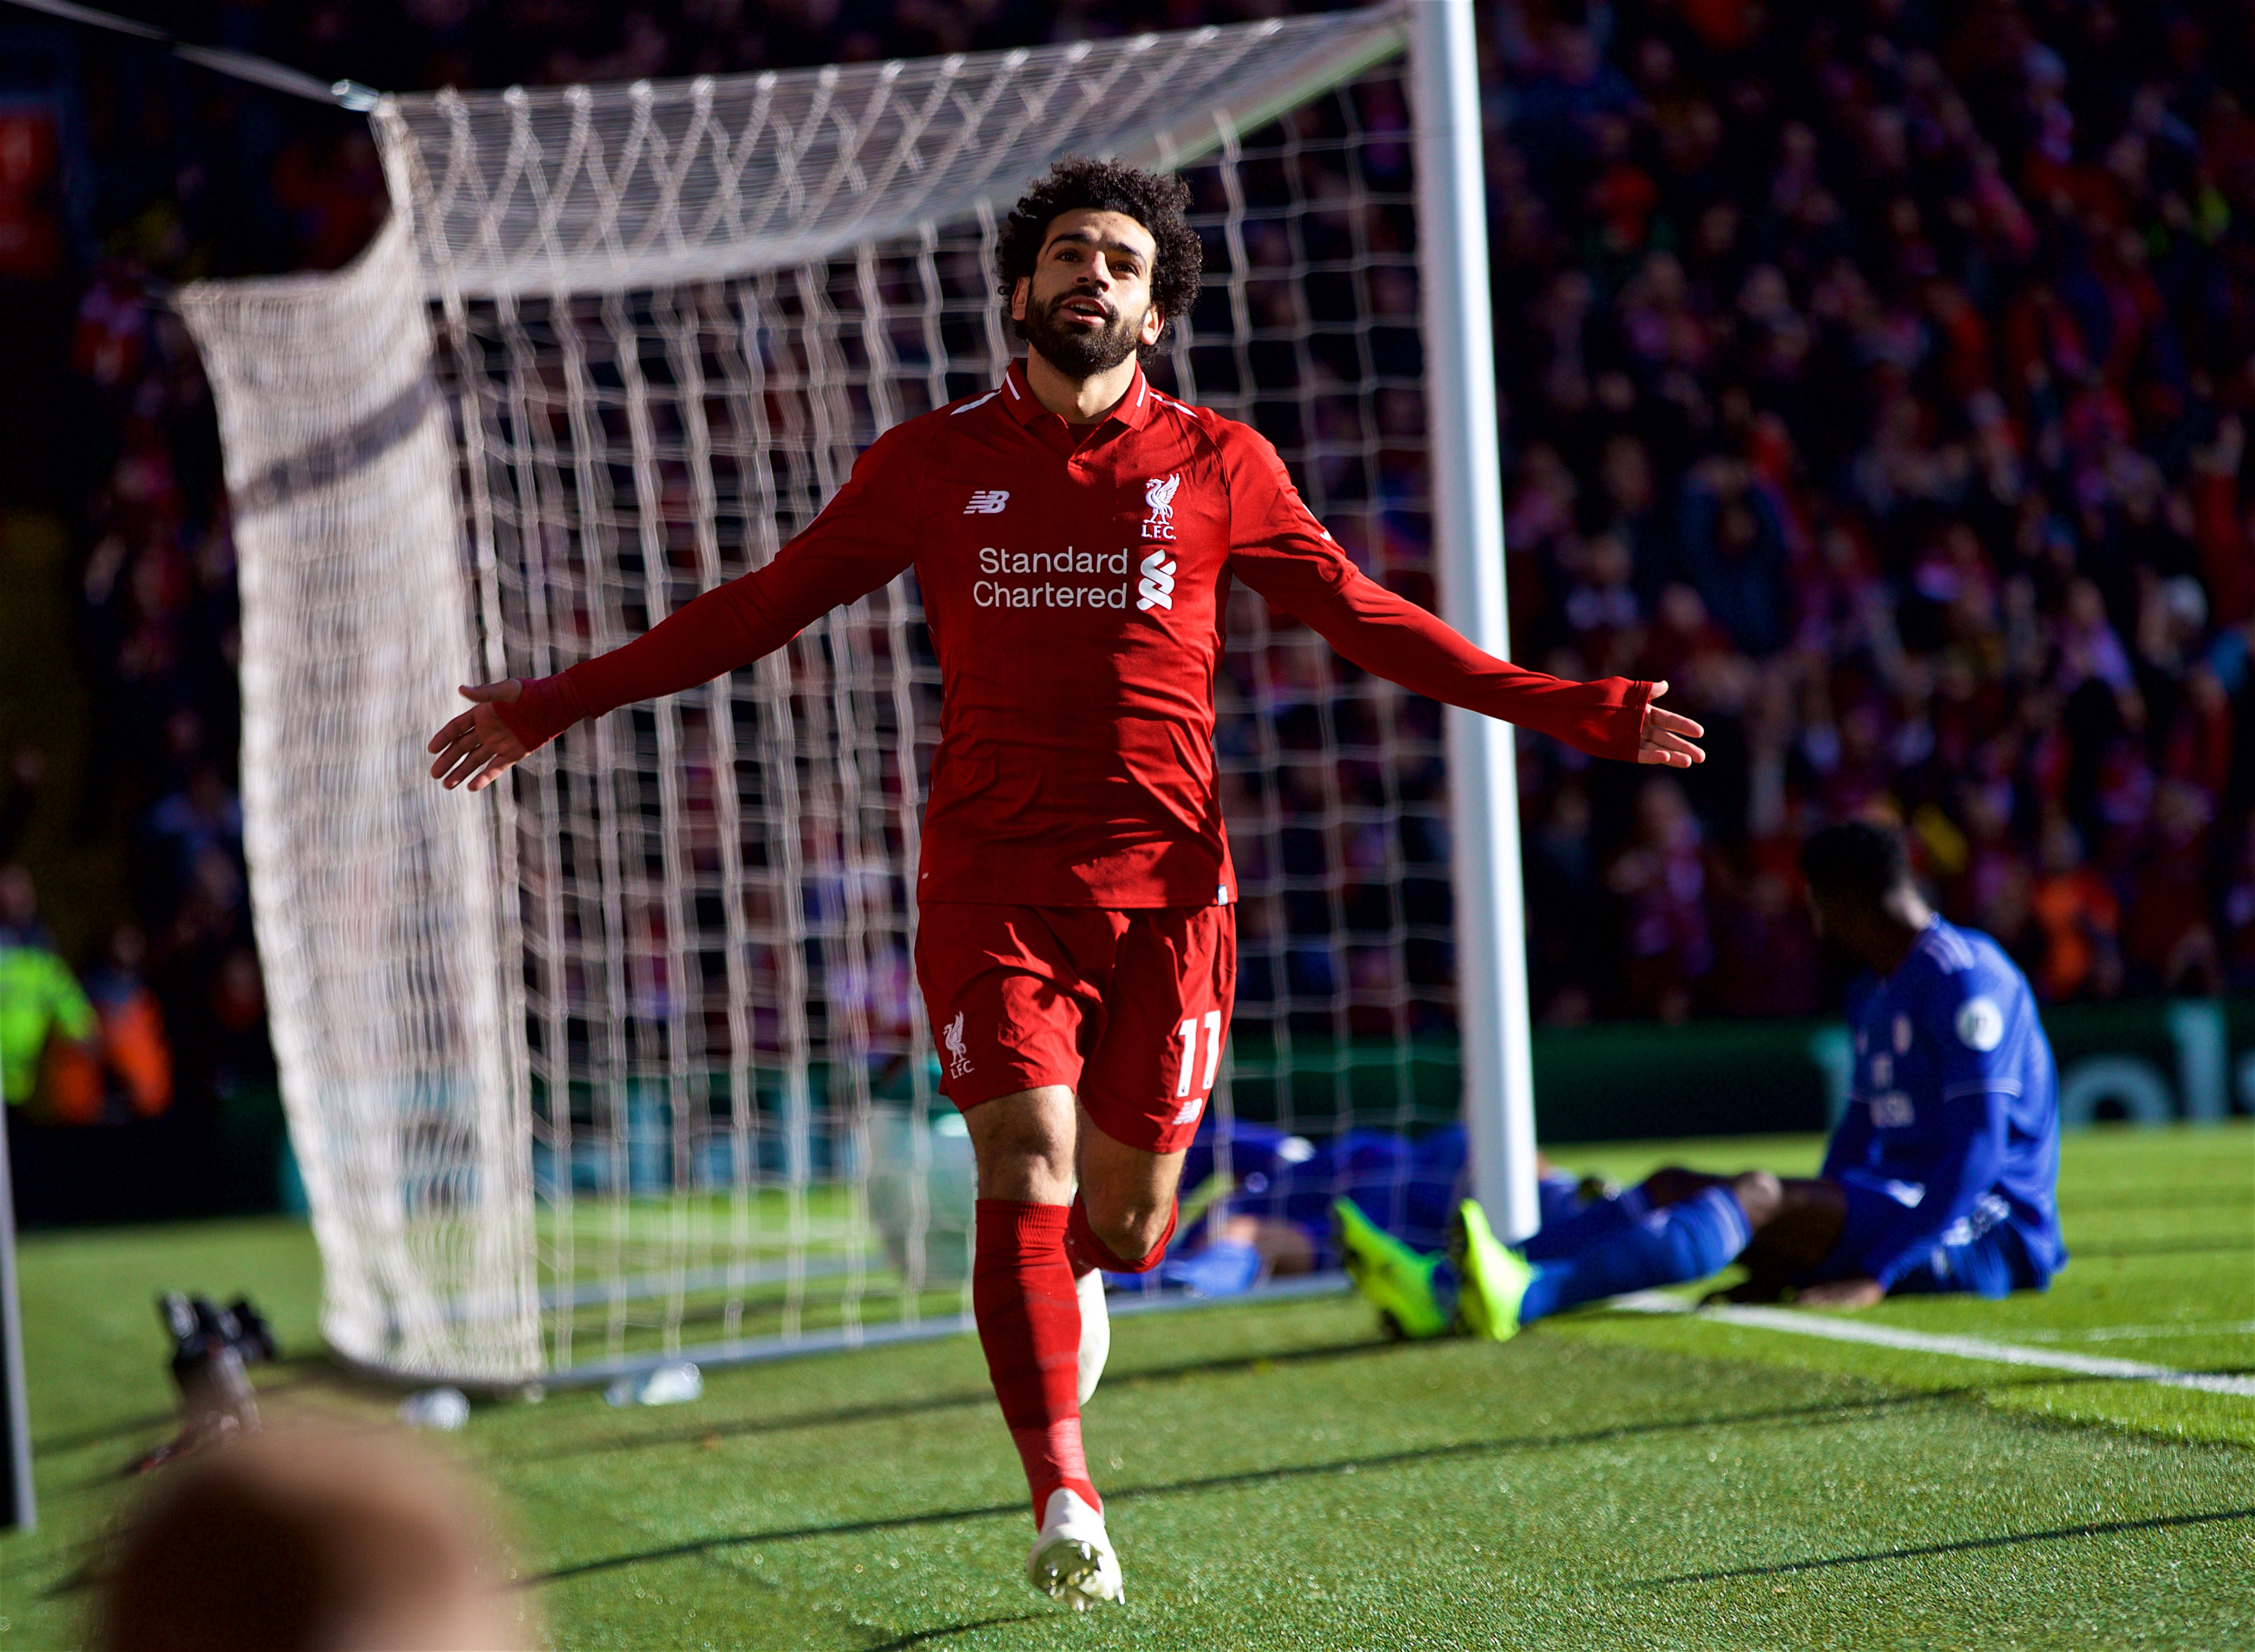 Cardiff City v Liverpool: The Big Match Preview